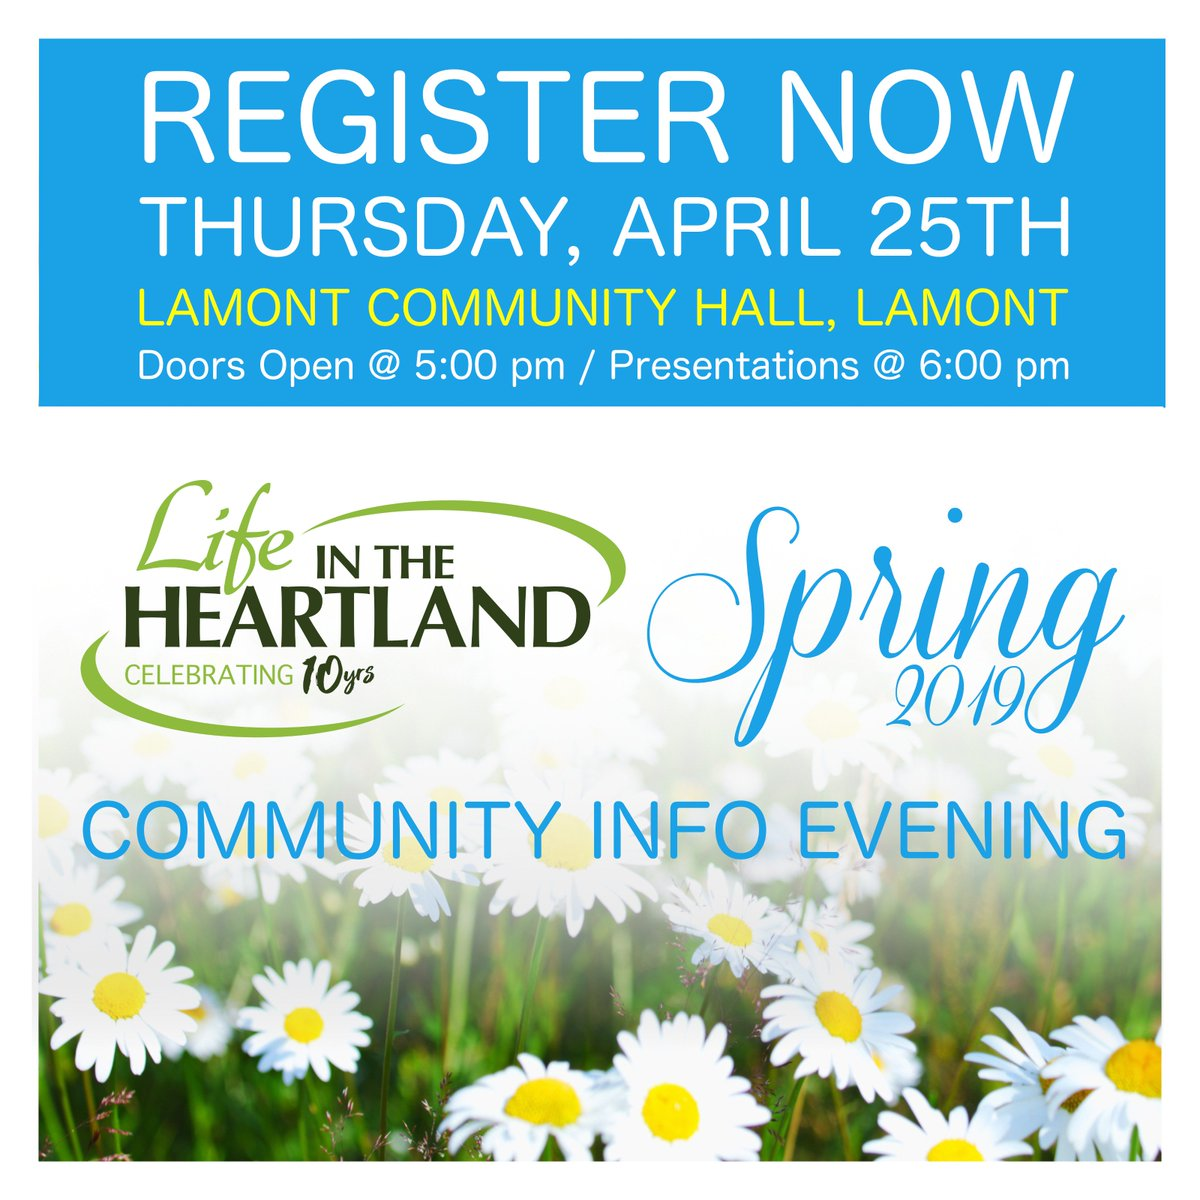 Registration Now Open!  Community Info Evening.  5 EASY WAYS TO REGISTER:   1. Visit our website: http://www.lifeintheheartland.com   2. Click here: http://bit.ly/lithreg  3. Message us on Facebook or Twitter  4. Send a text or call: 780-243-7453  5. Email info@lifeintheheartland.com